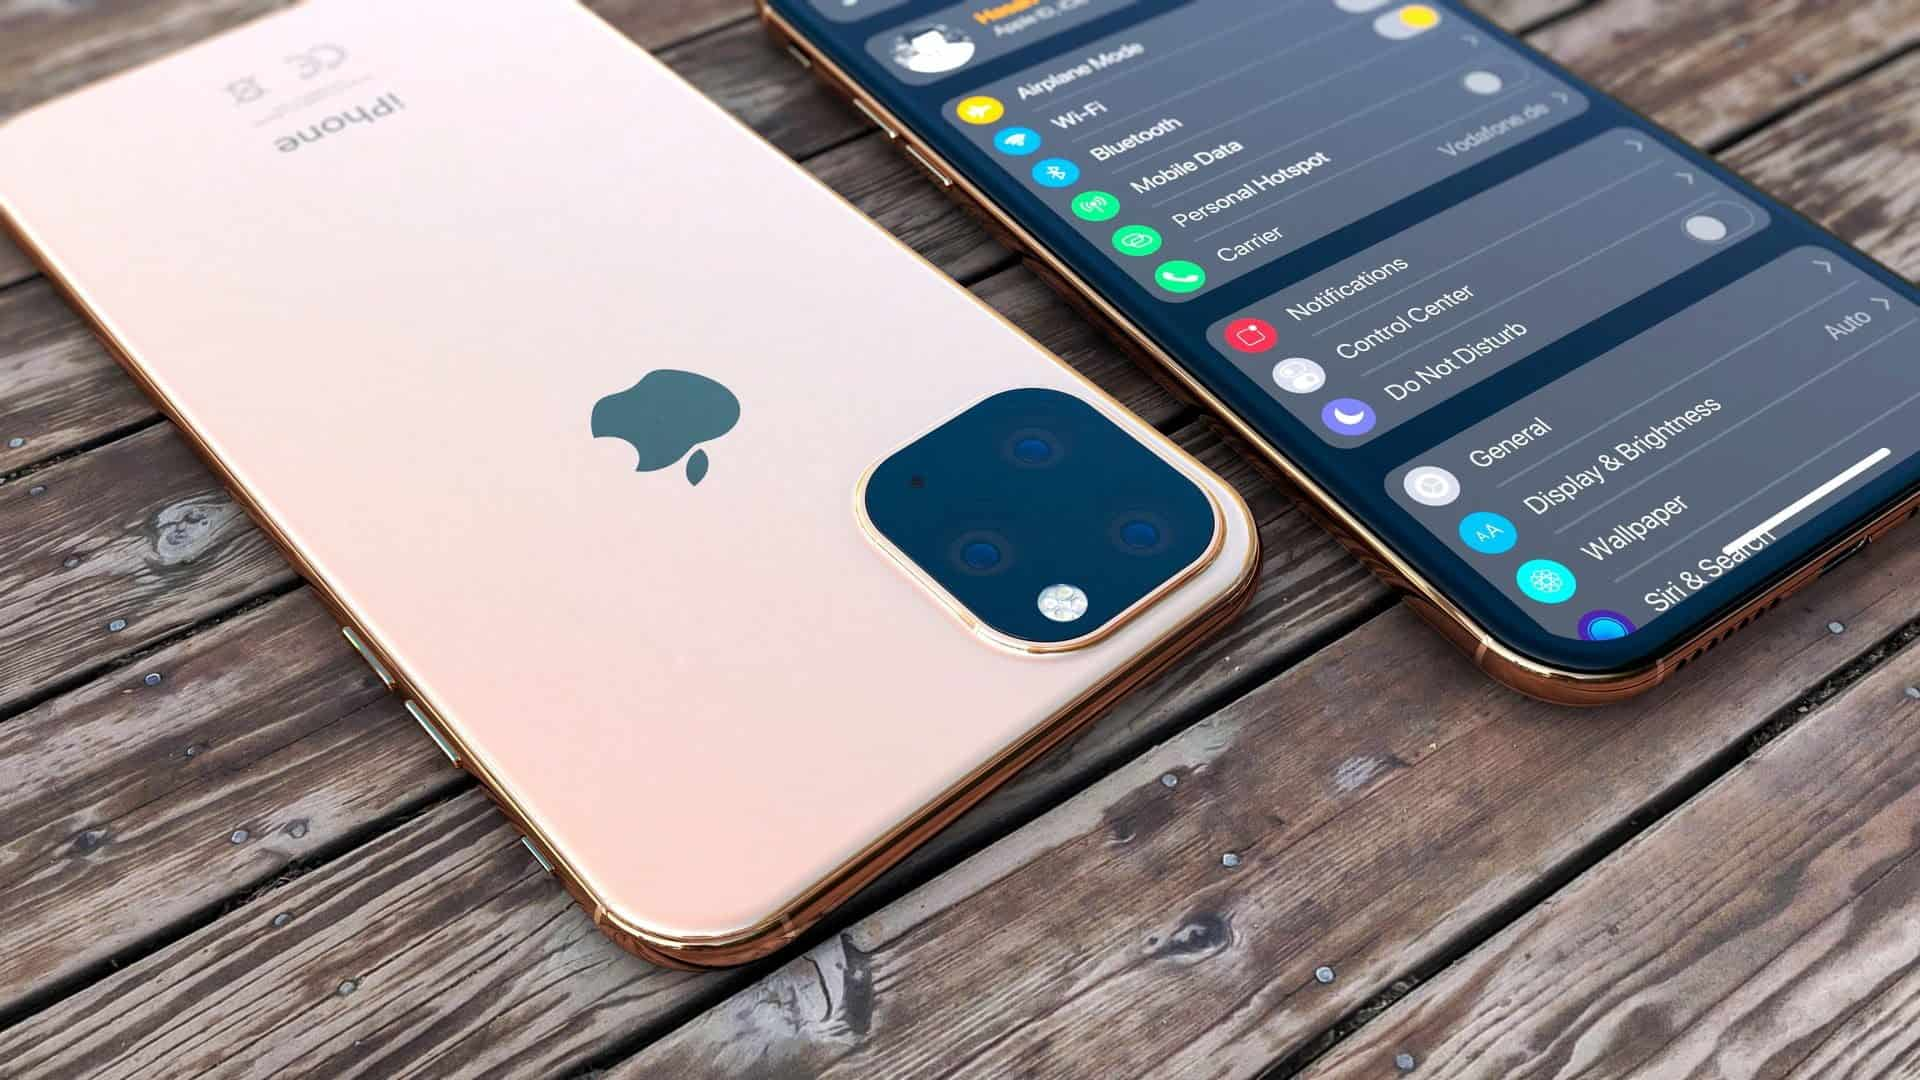 Apple iPhone 12 Release Date Updates Coronavirus Pandemic to Delay the 2020 Launch Event